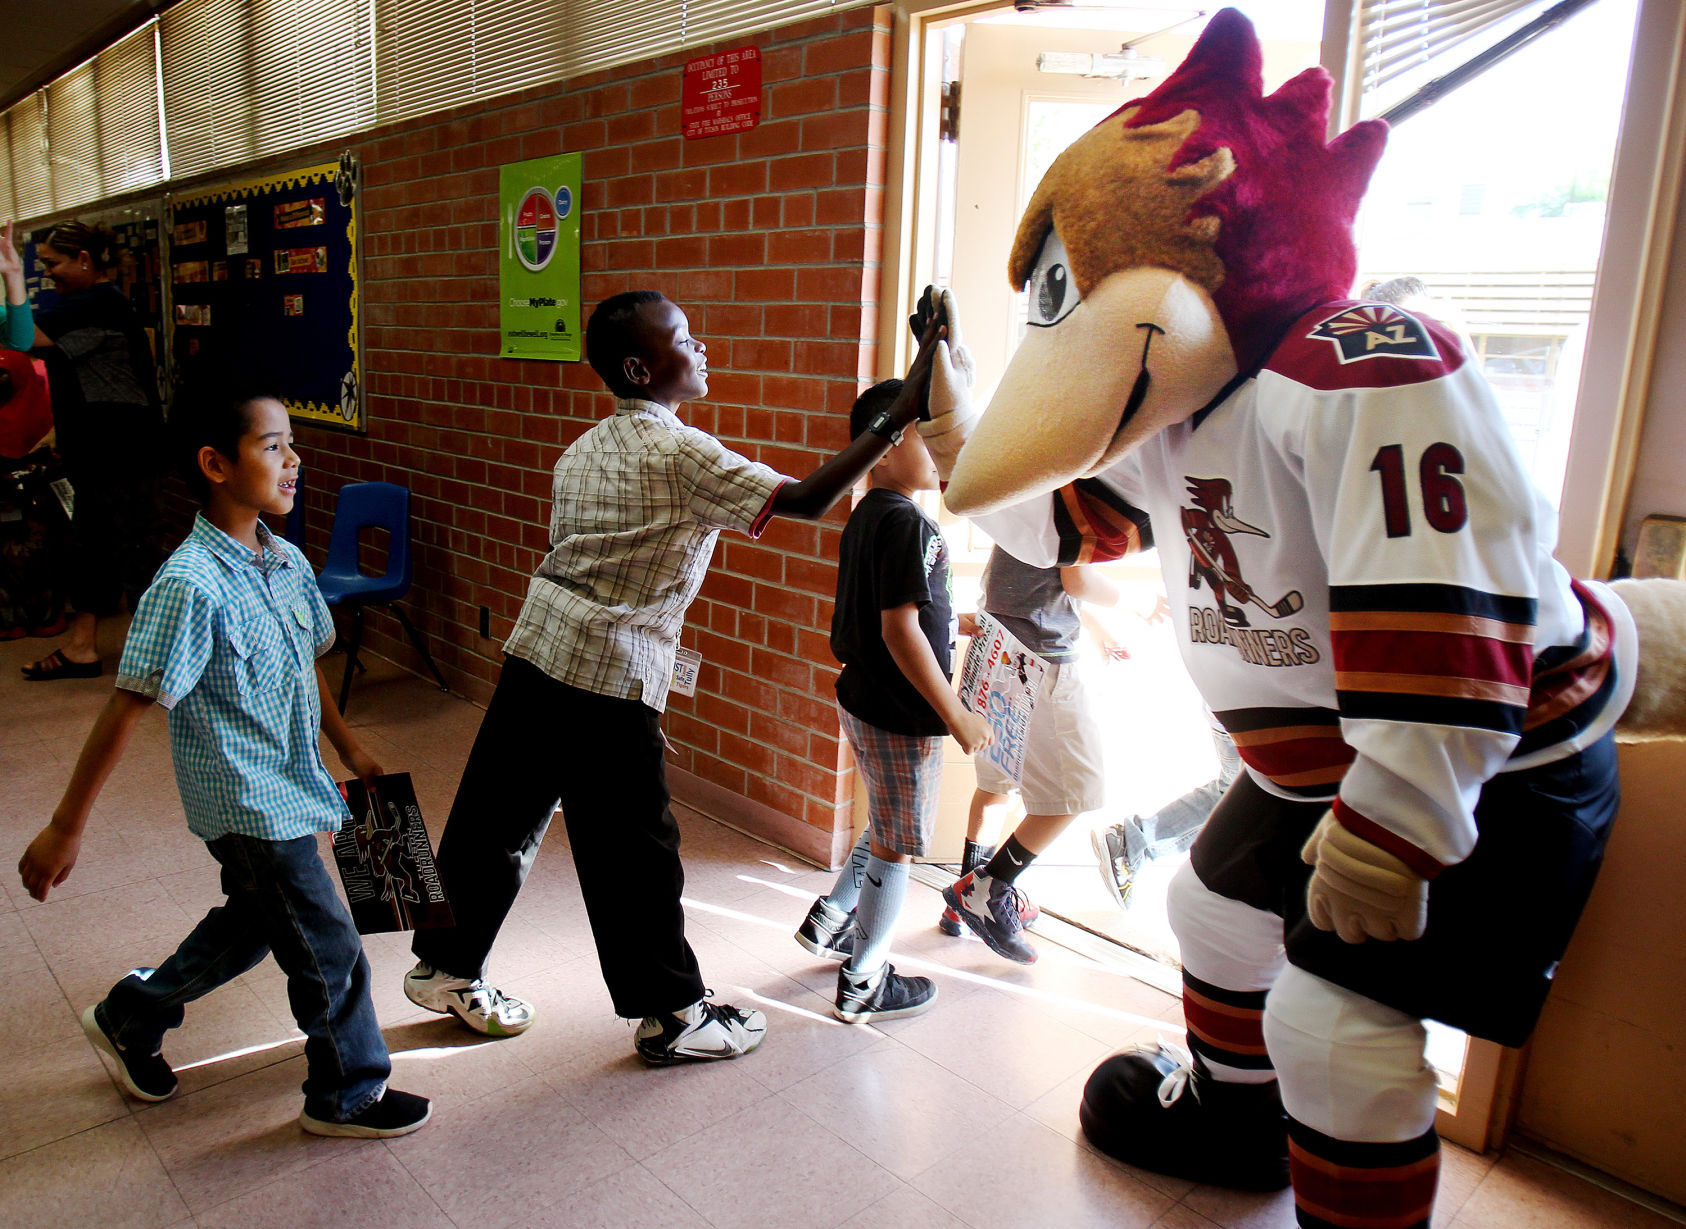 AHL: Tucsonans Ready To Welcome 'newborn' Roadrunners To Town